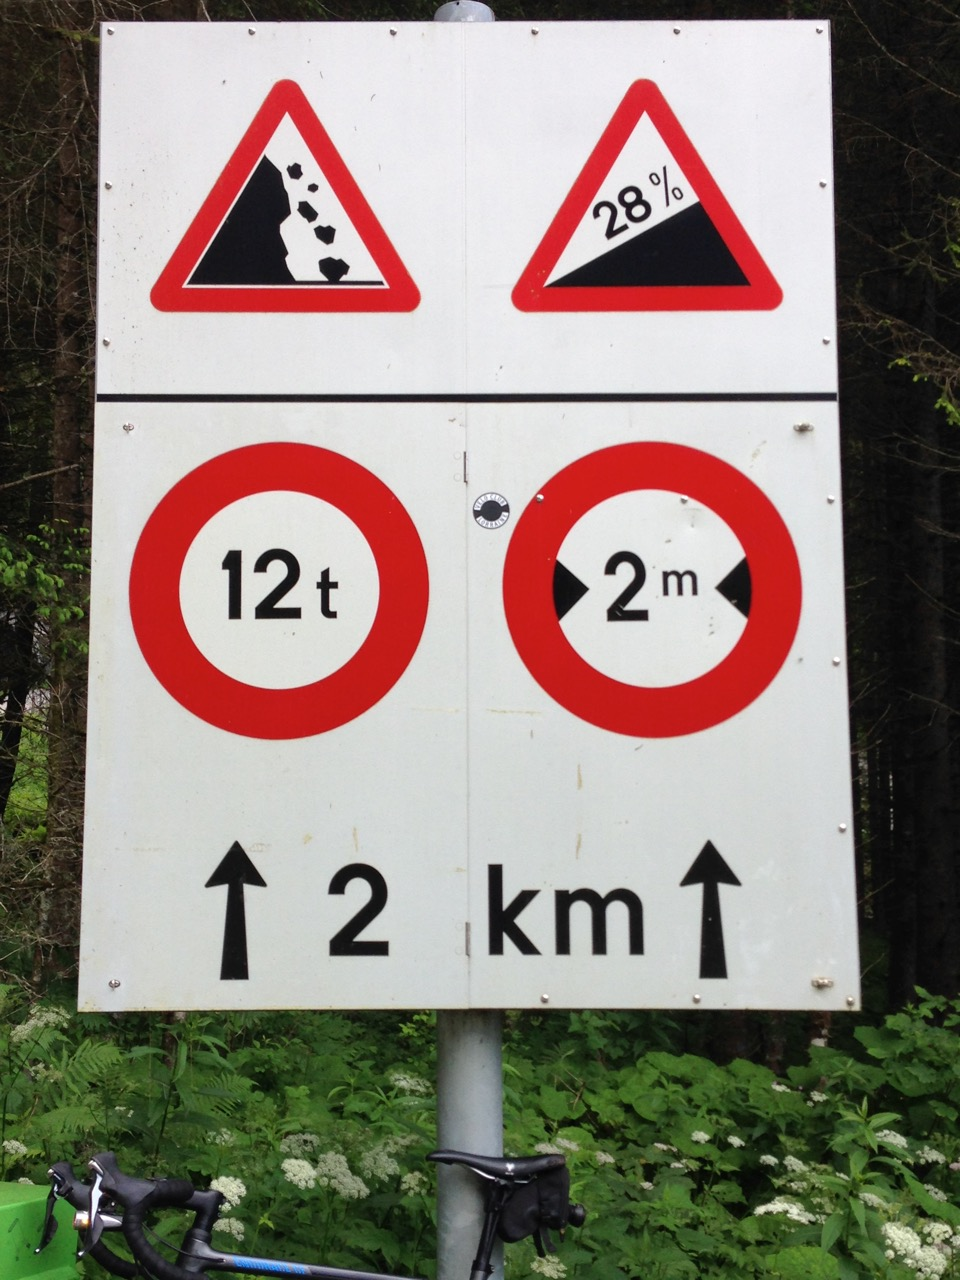 Picture of the 28% sign